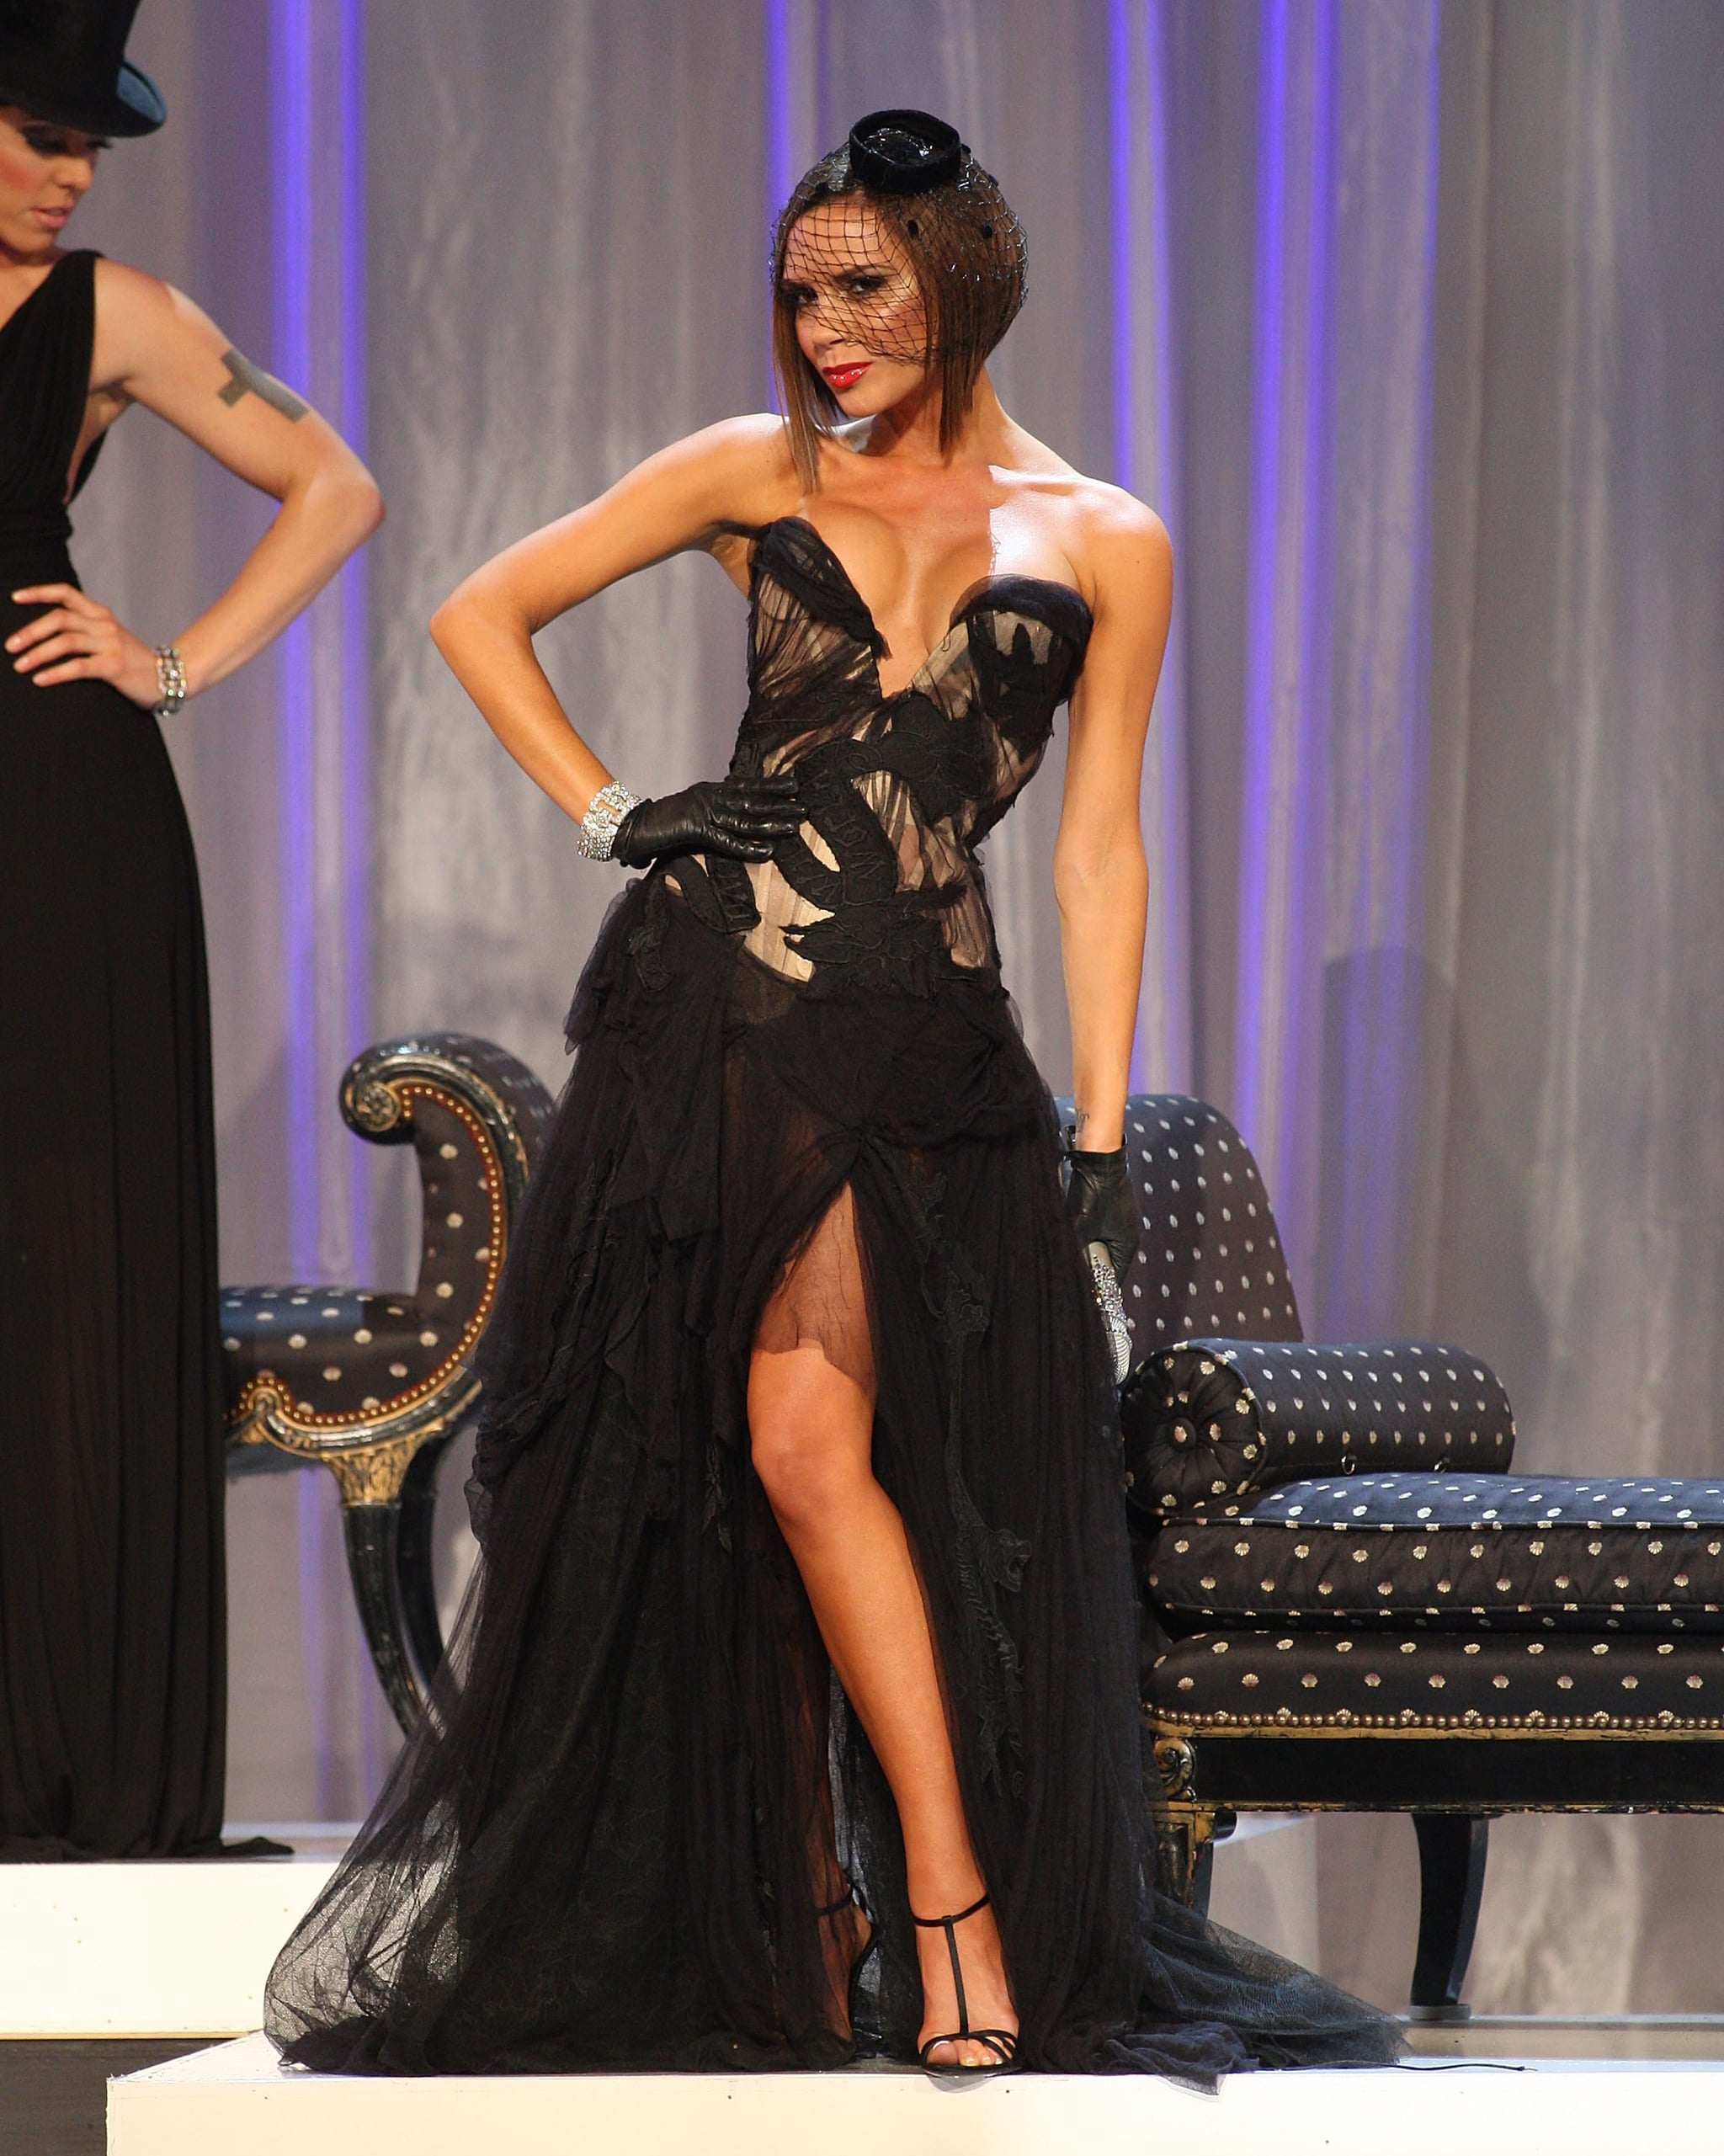 Victoria Beckham looked right at home on stage while performing with the Spice Girls during the 2007 show.